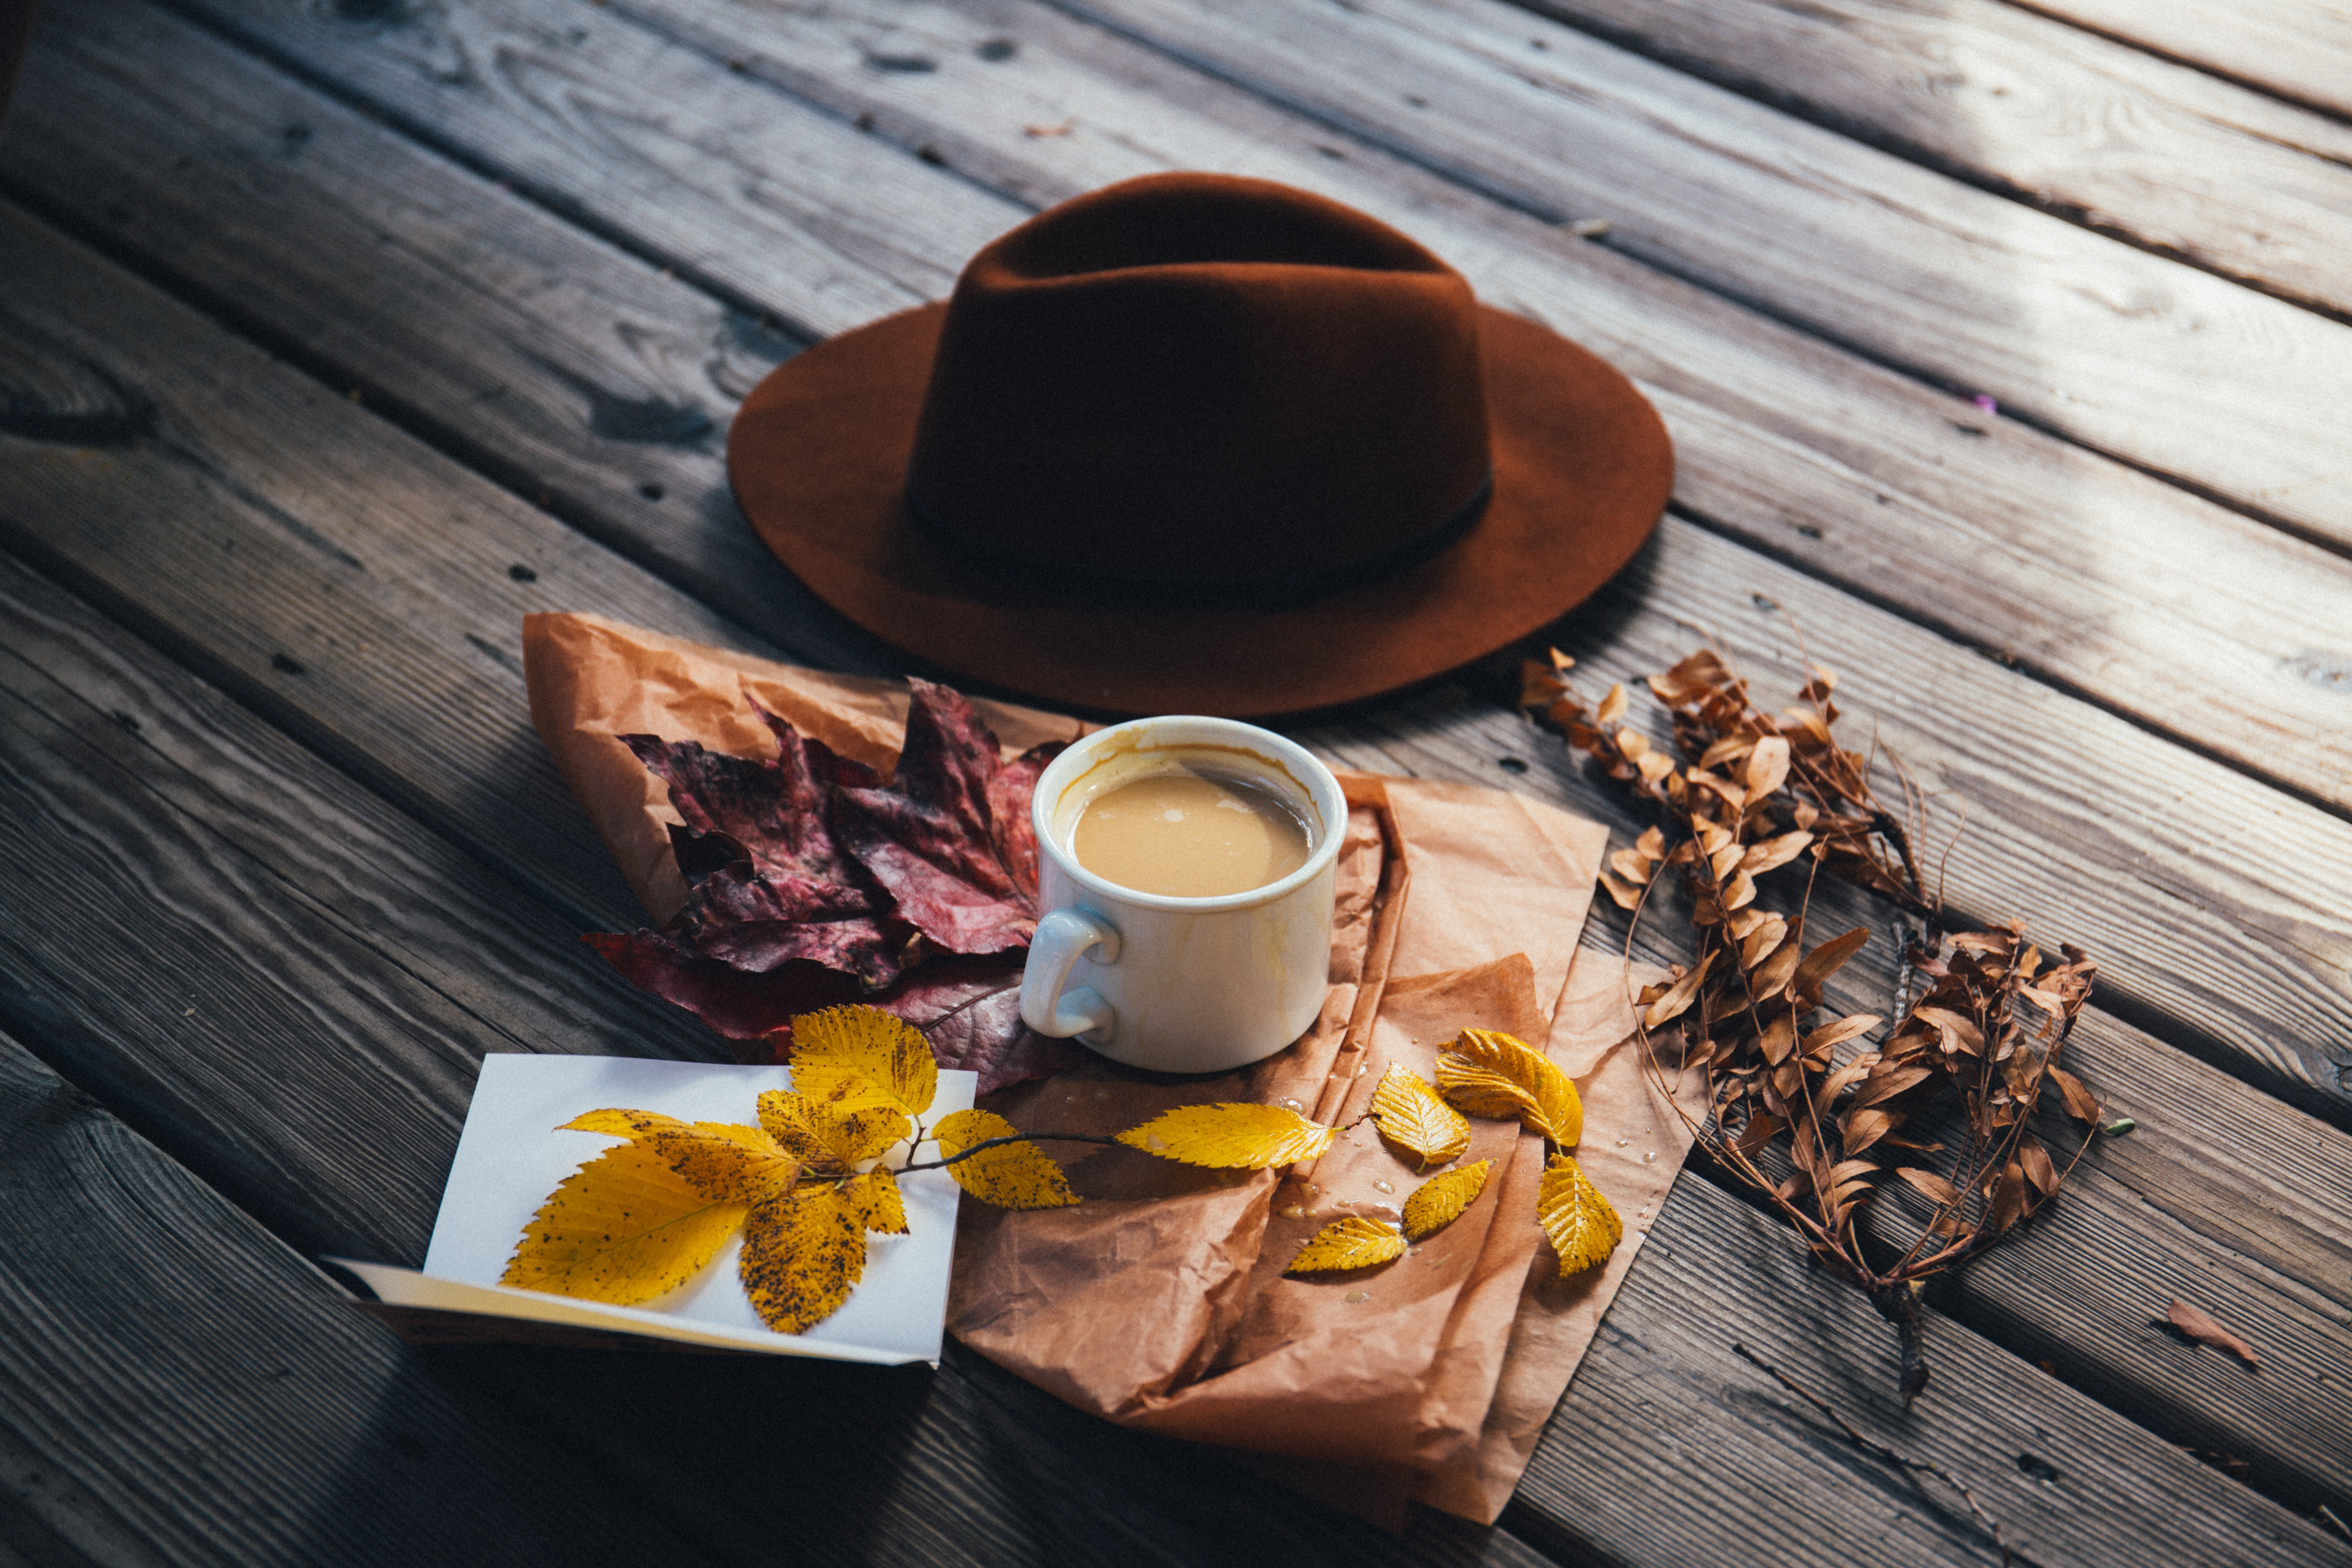 A brown cowboy hat, a cup of coffee and autumn leaves laid out on a wooden surface